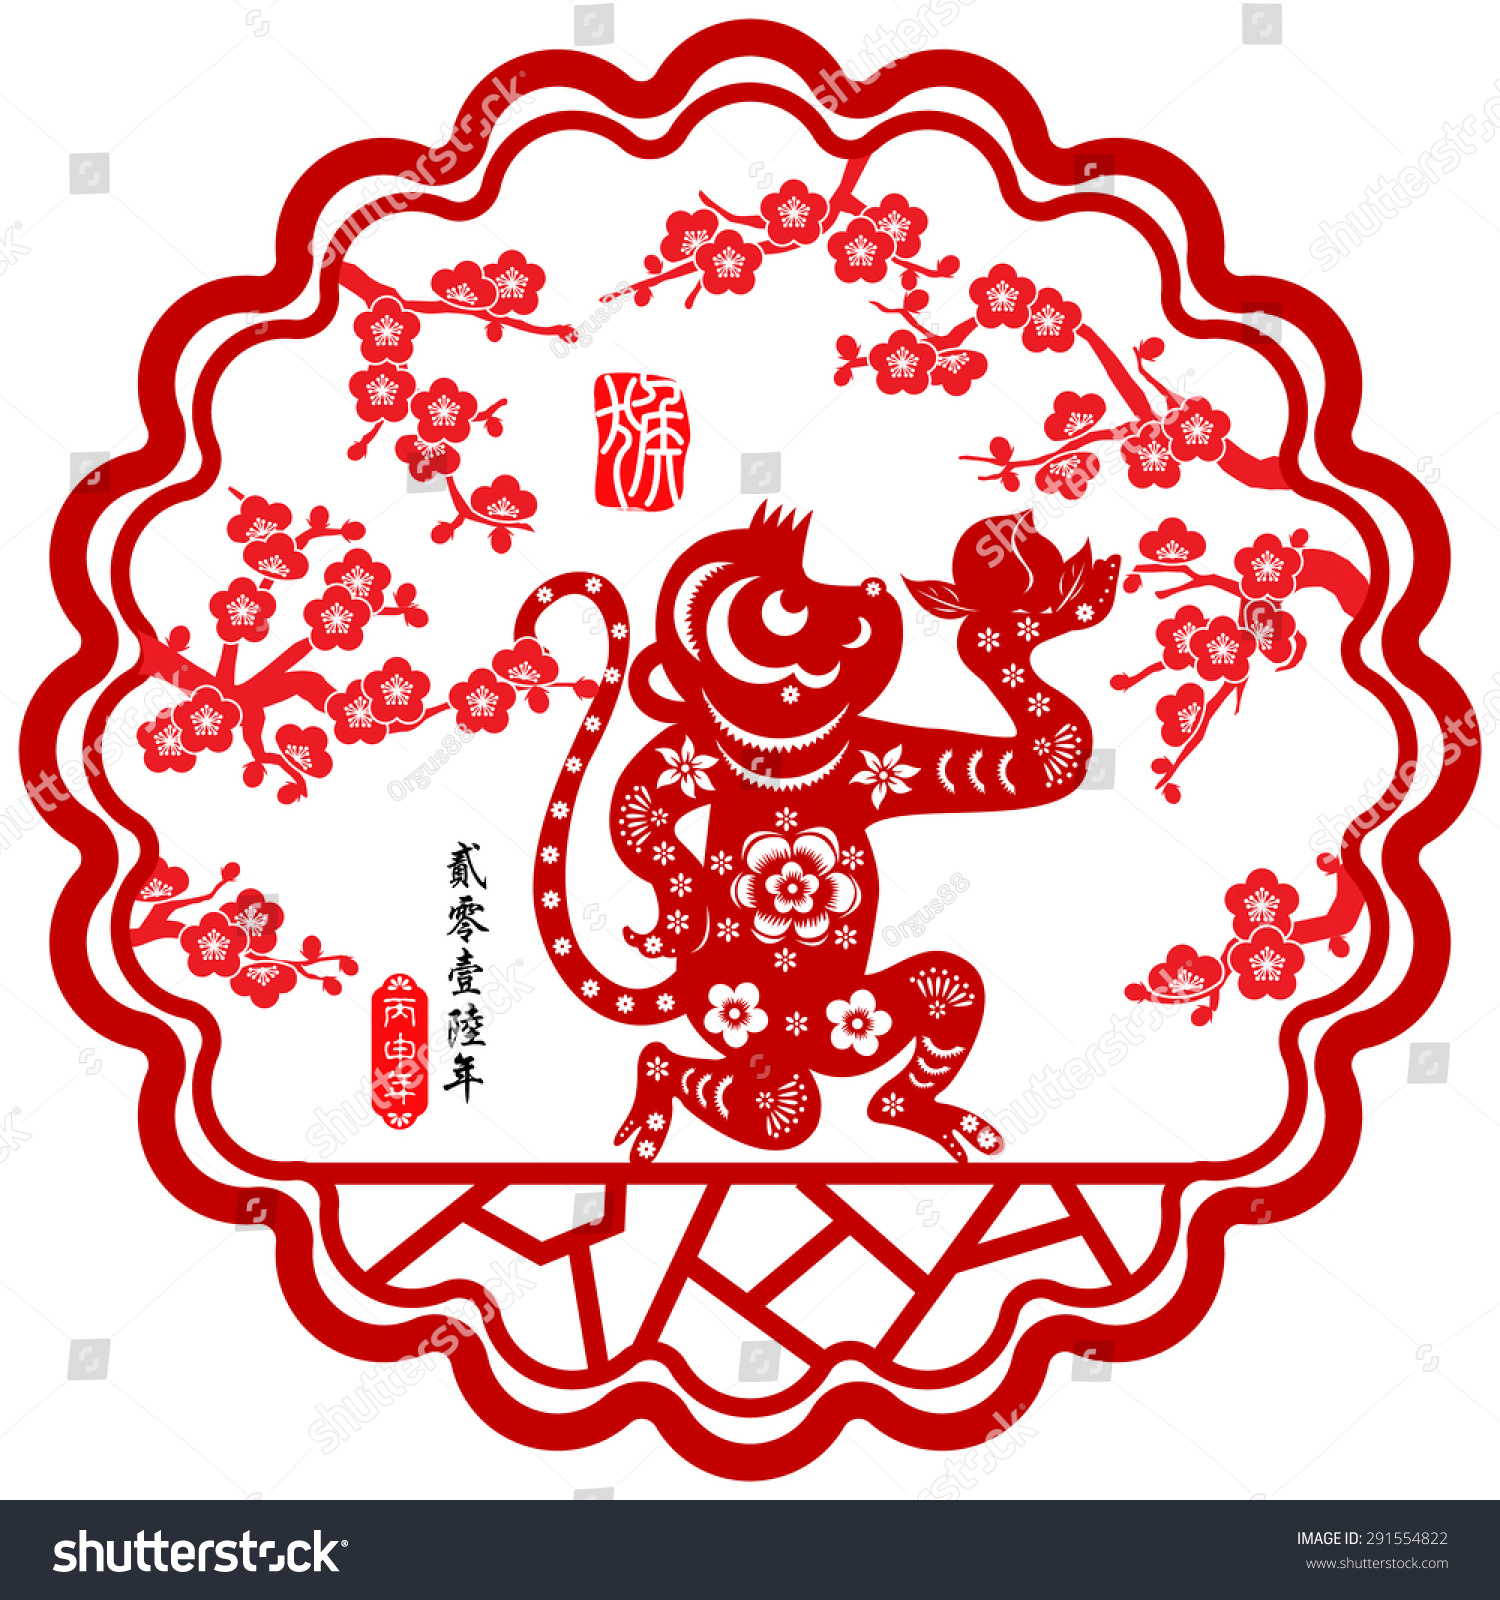 2016 Lunar New Year Greeting Card Stock Vector 291554822 ...